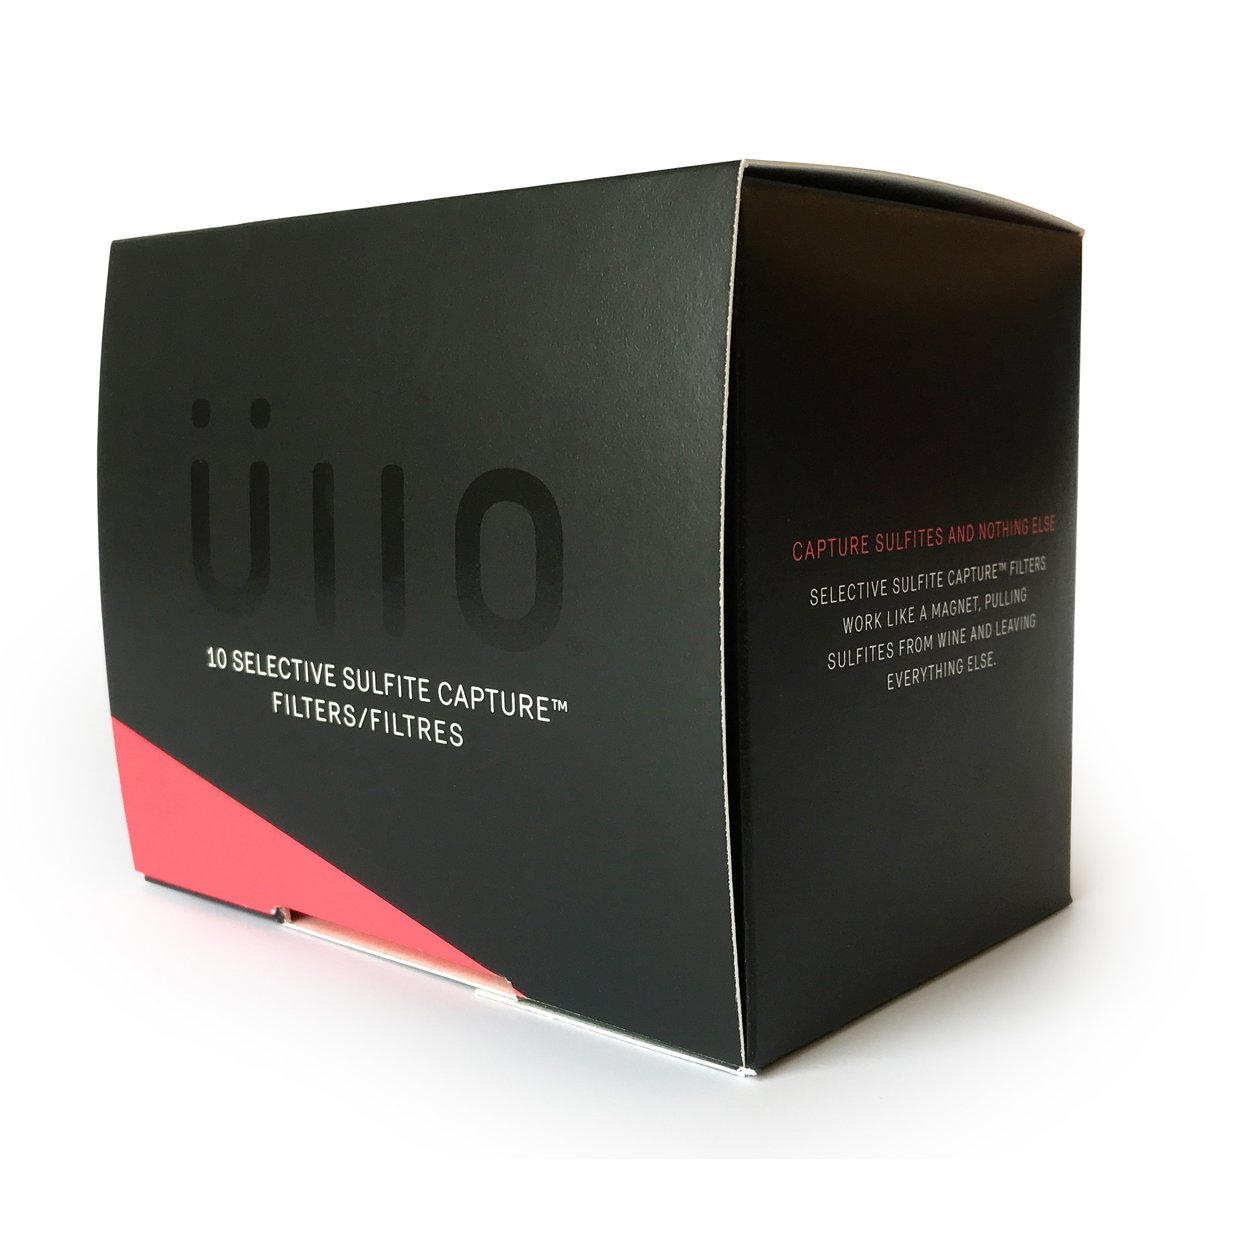 Ullo Replacement Filters (10 Pack) -  Selective Sulfite Capture Technology -  Restore the Natural Purity of Wine